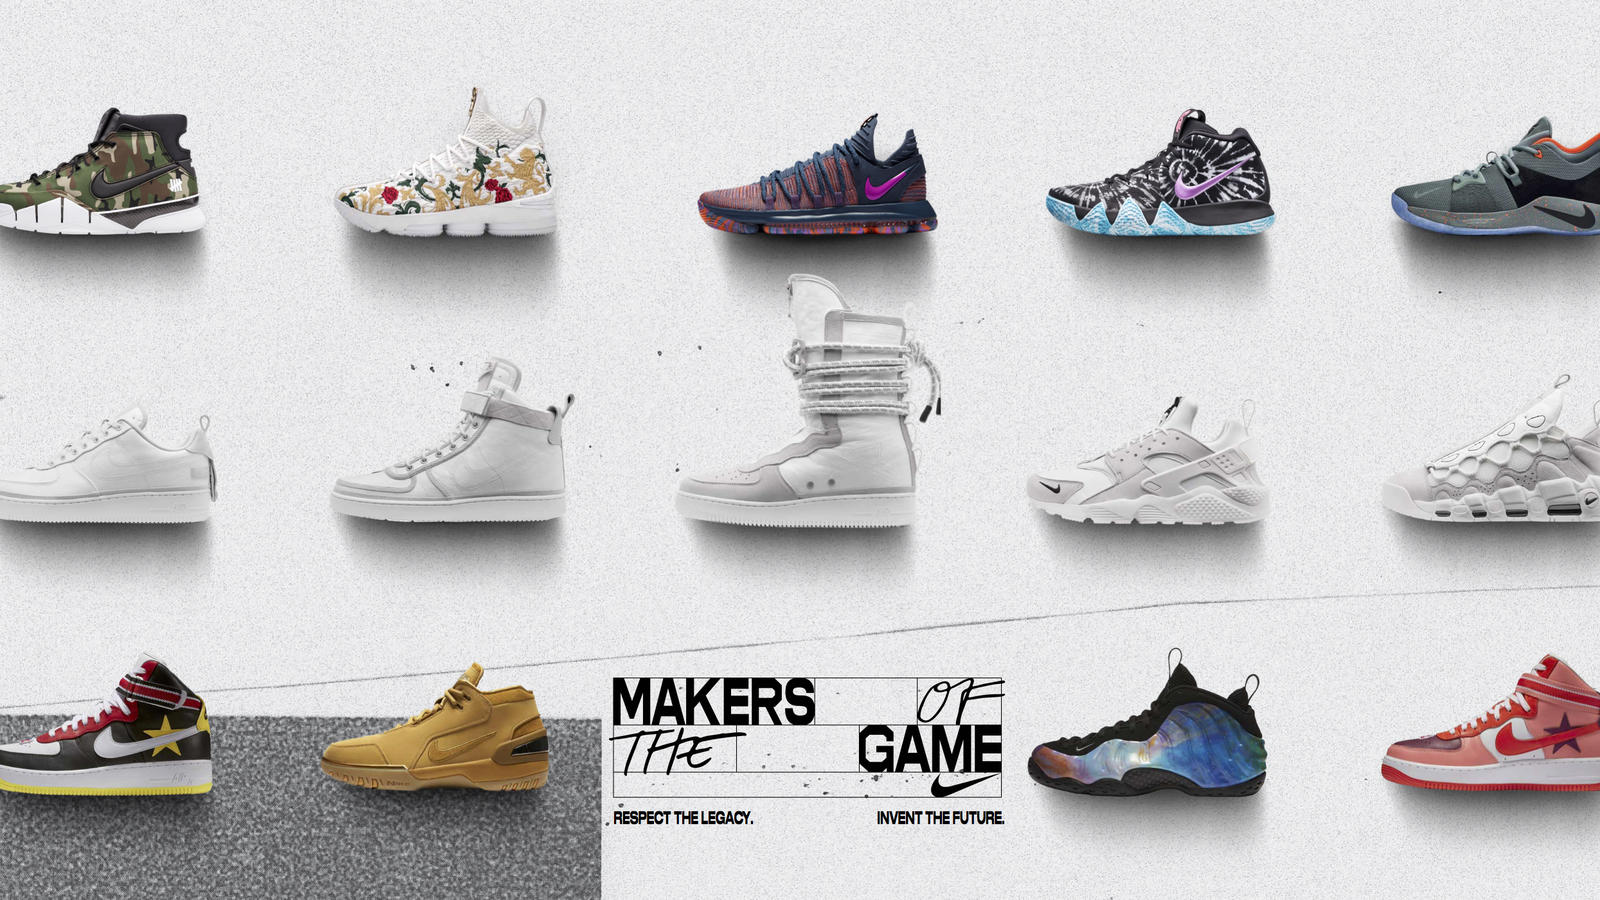 First Row From Left Kobe Protro X Undefeated LeBron KITH KDX ASW Kyrie 4 And PG2 Second 90 10 Pack Third Nike RT Air